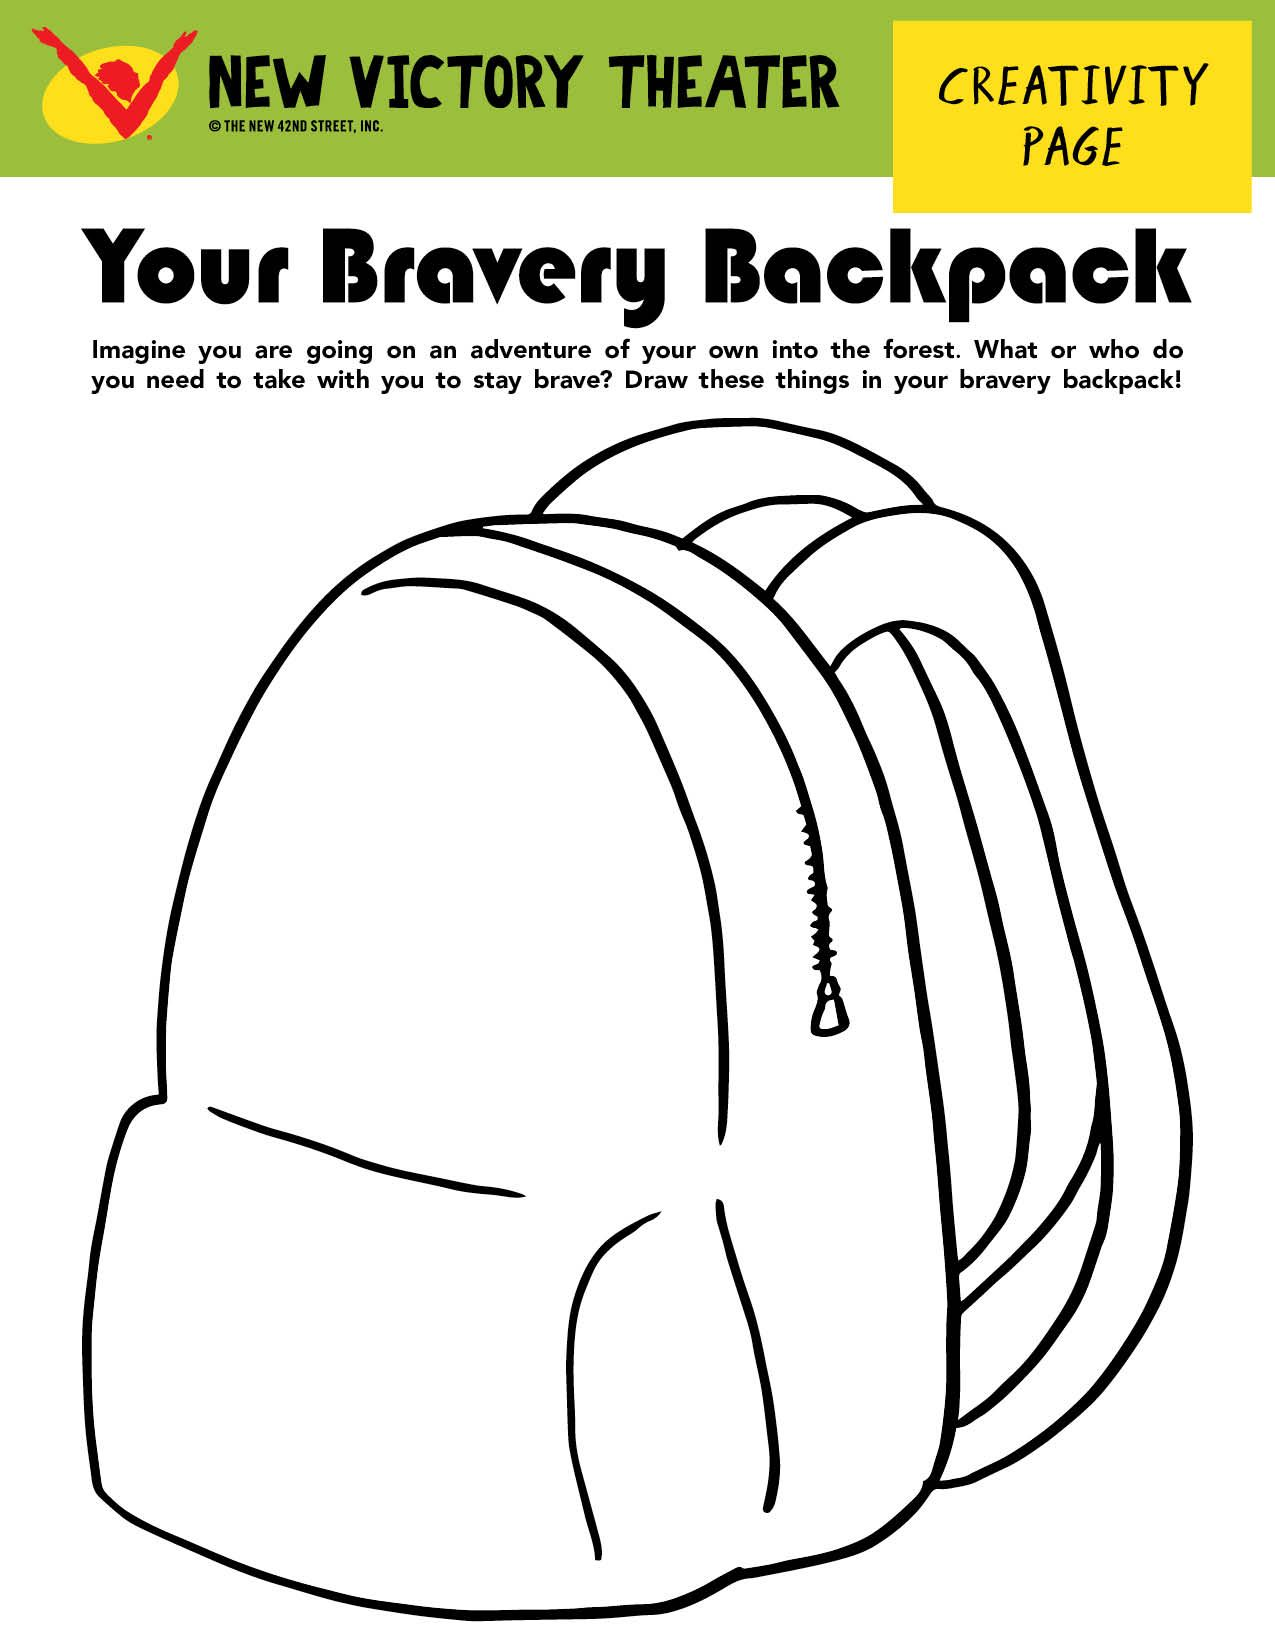 What Do You Need In Your Bravery Backpack To Stay Brave